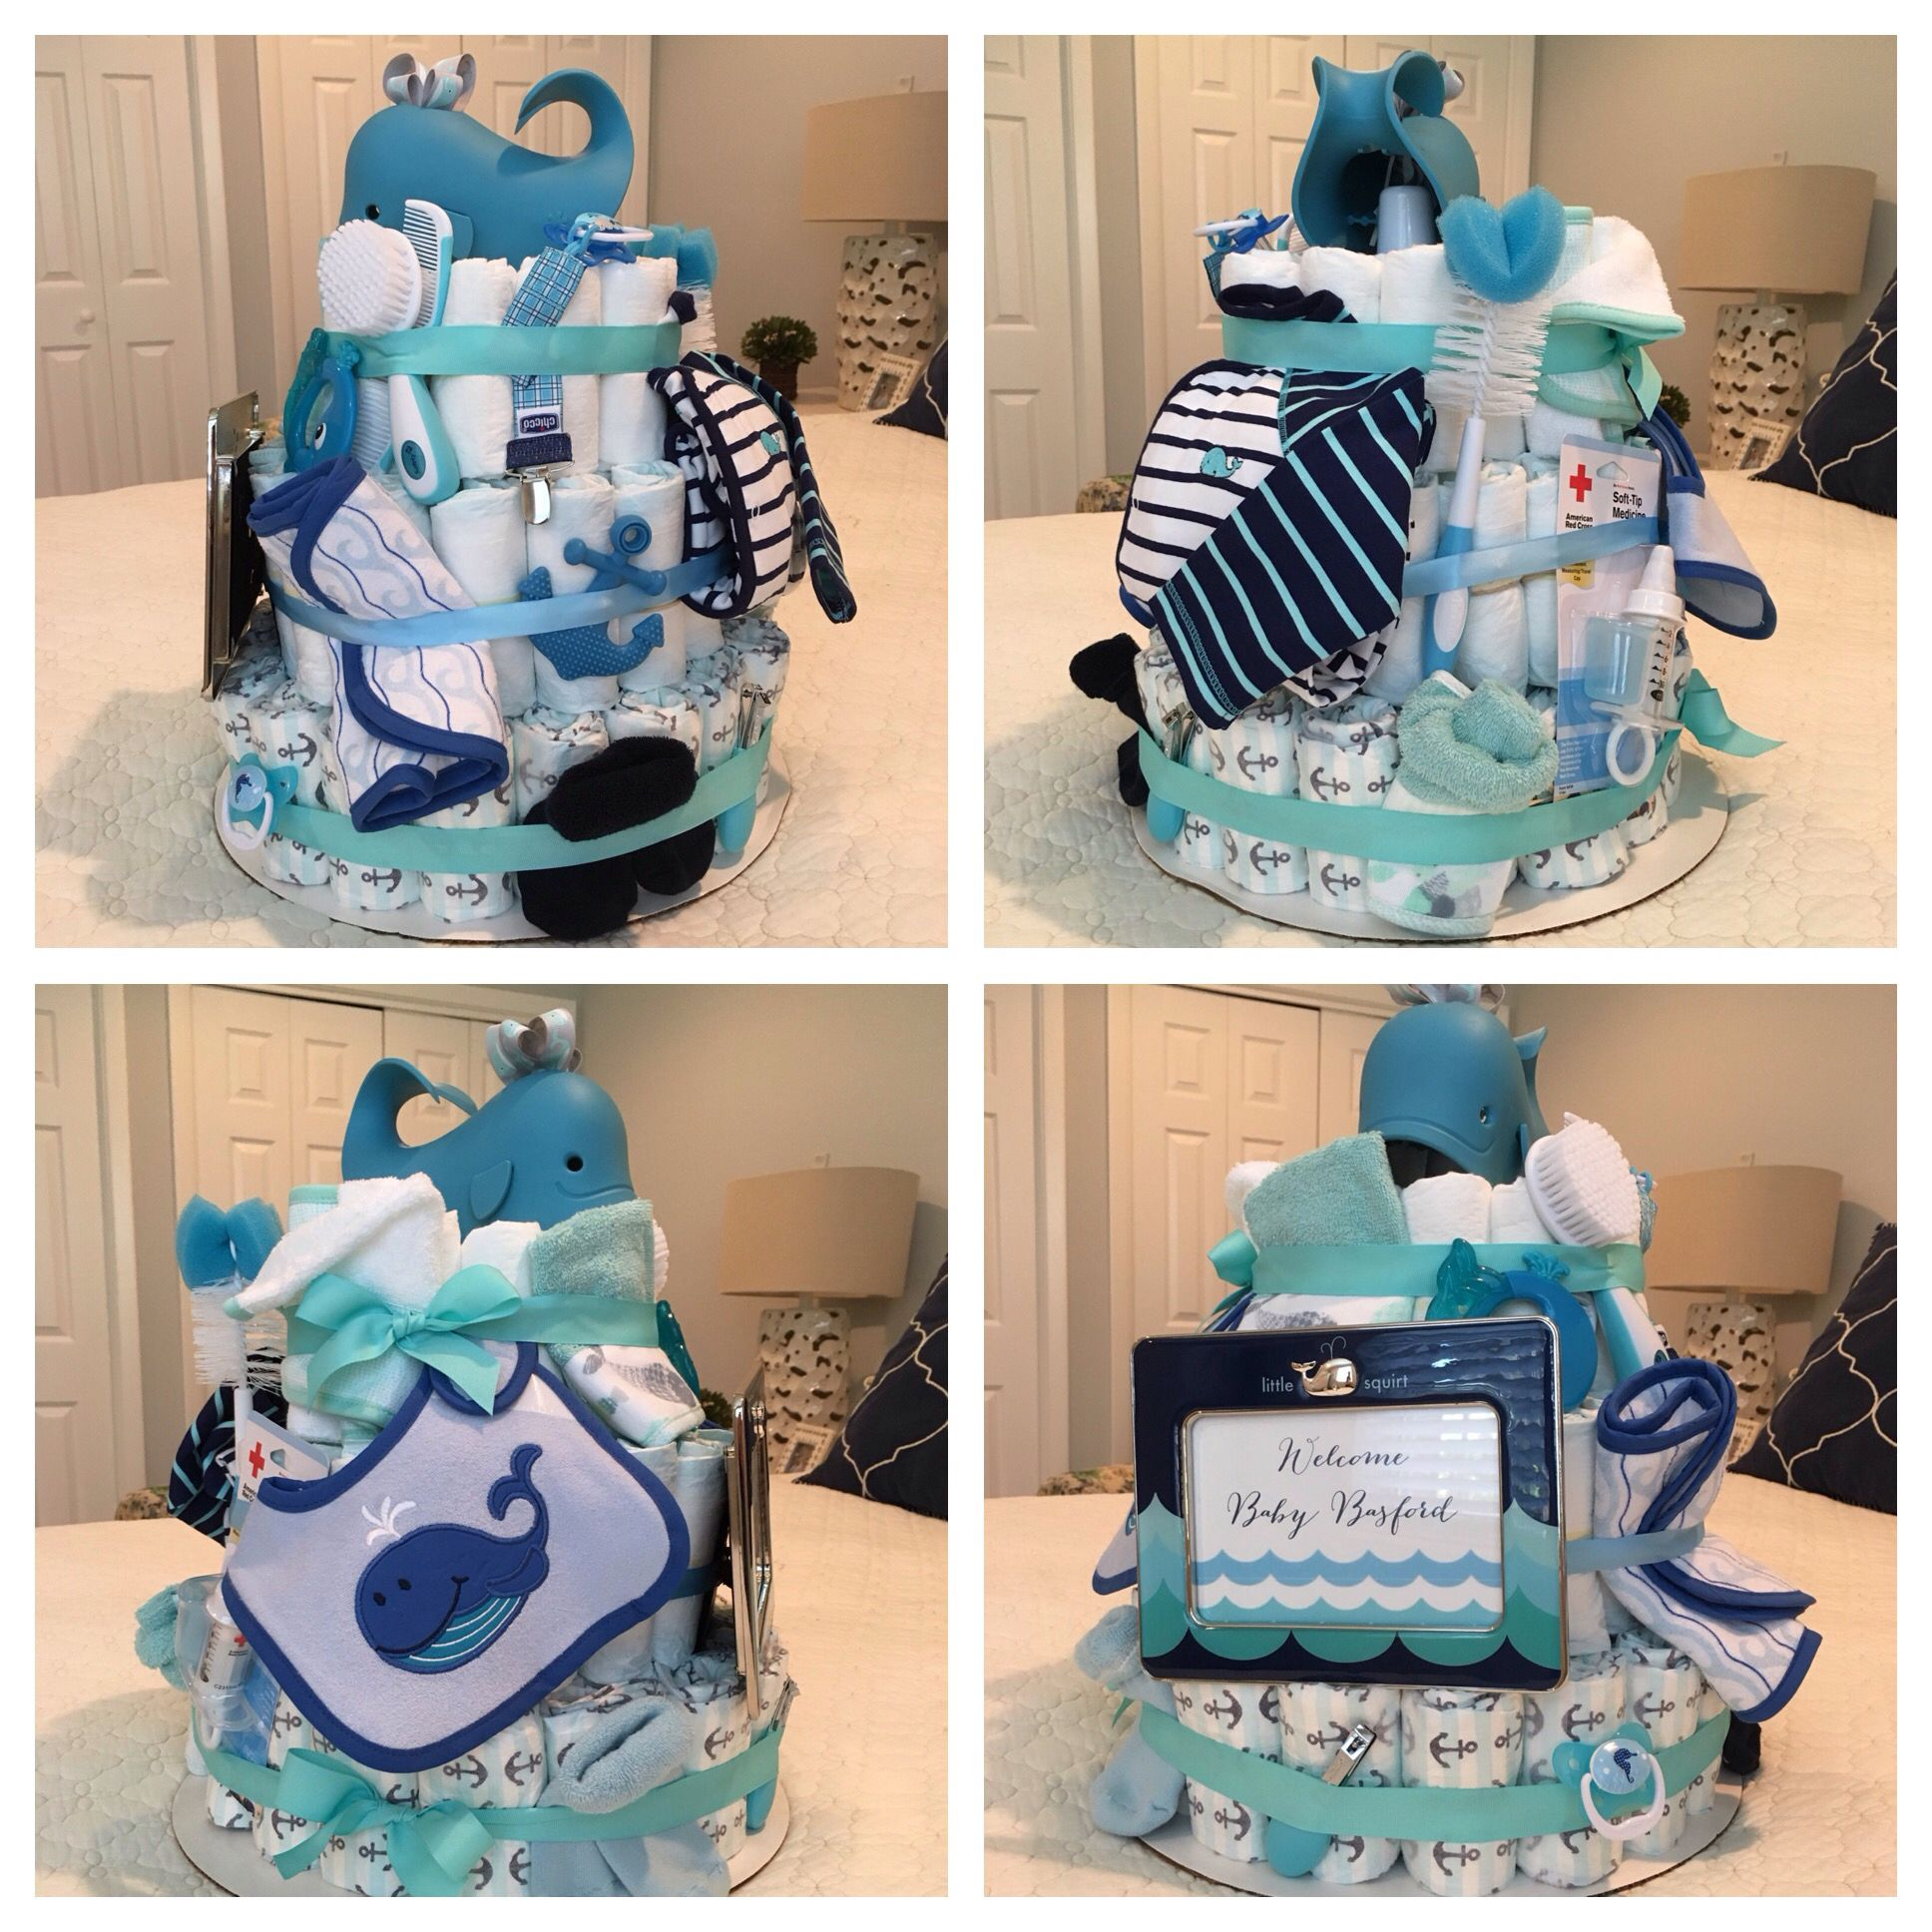 Whale Themed Diaper Cake For A Baby Boy Shower ... LOADED